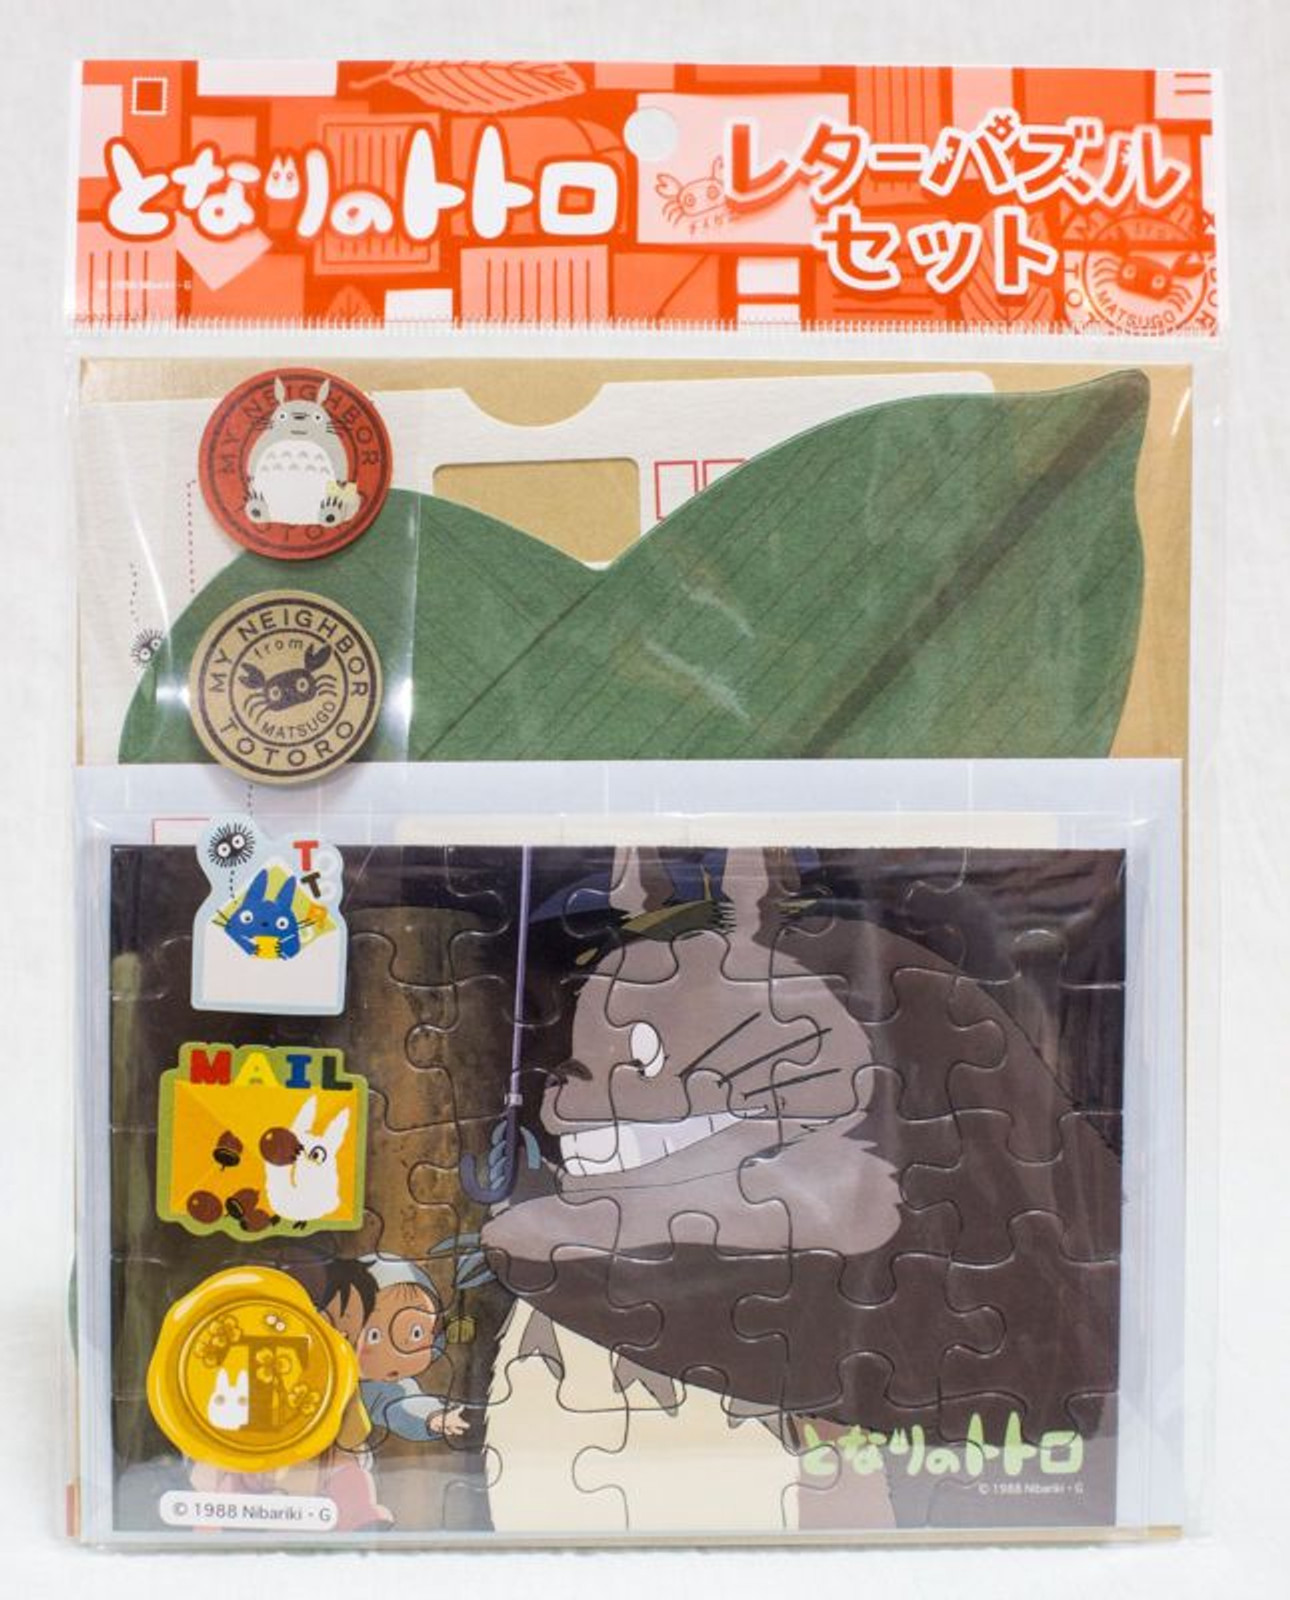 My Neighbor Totoro Letter Puzzle set Studio Ghibli JAPAN ANIME MANGA 1